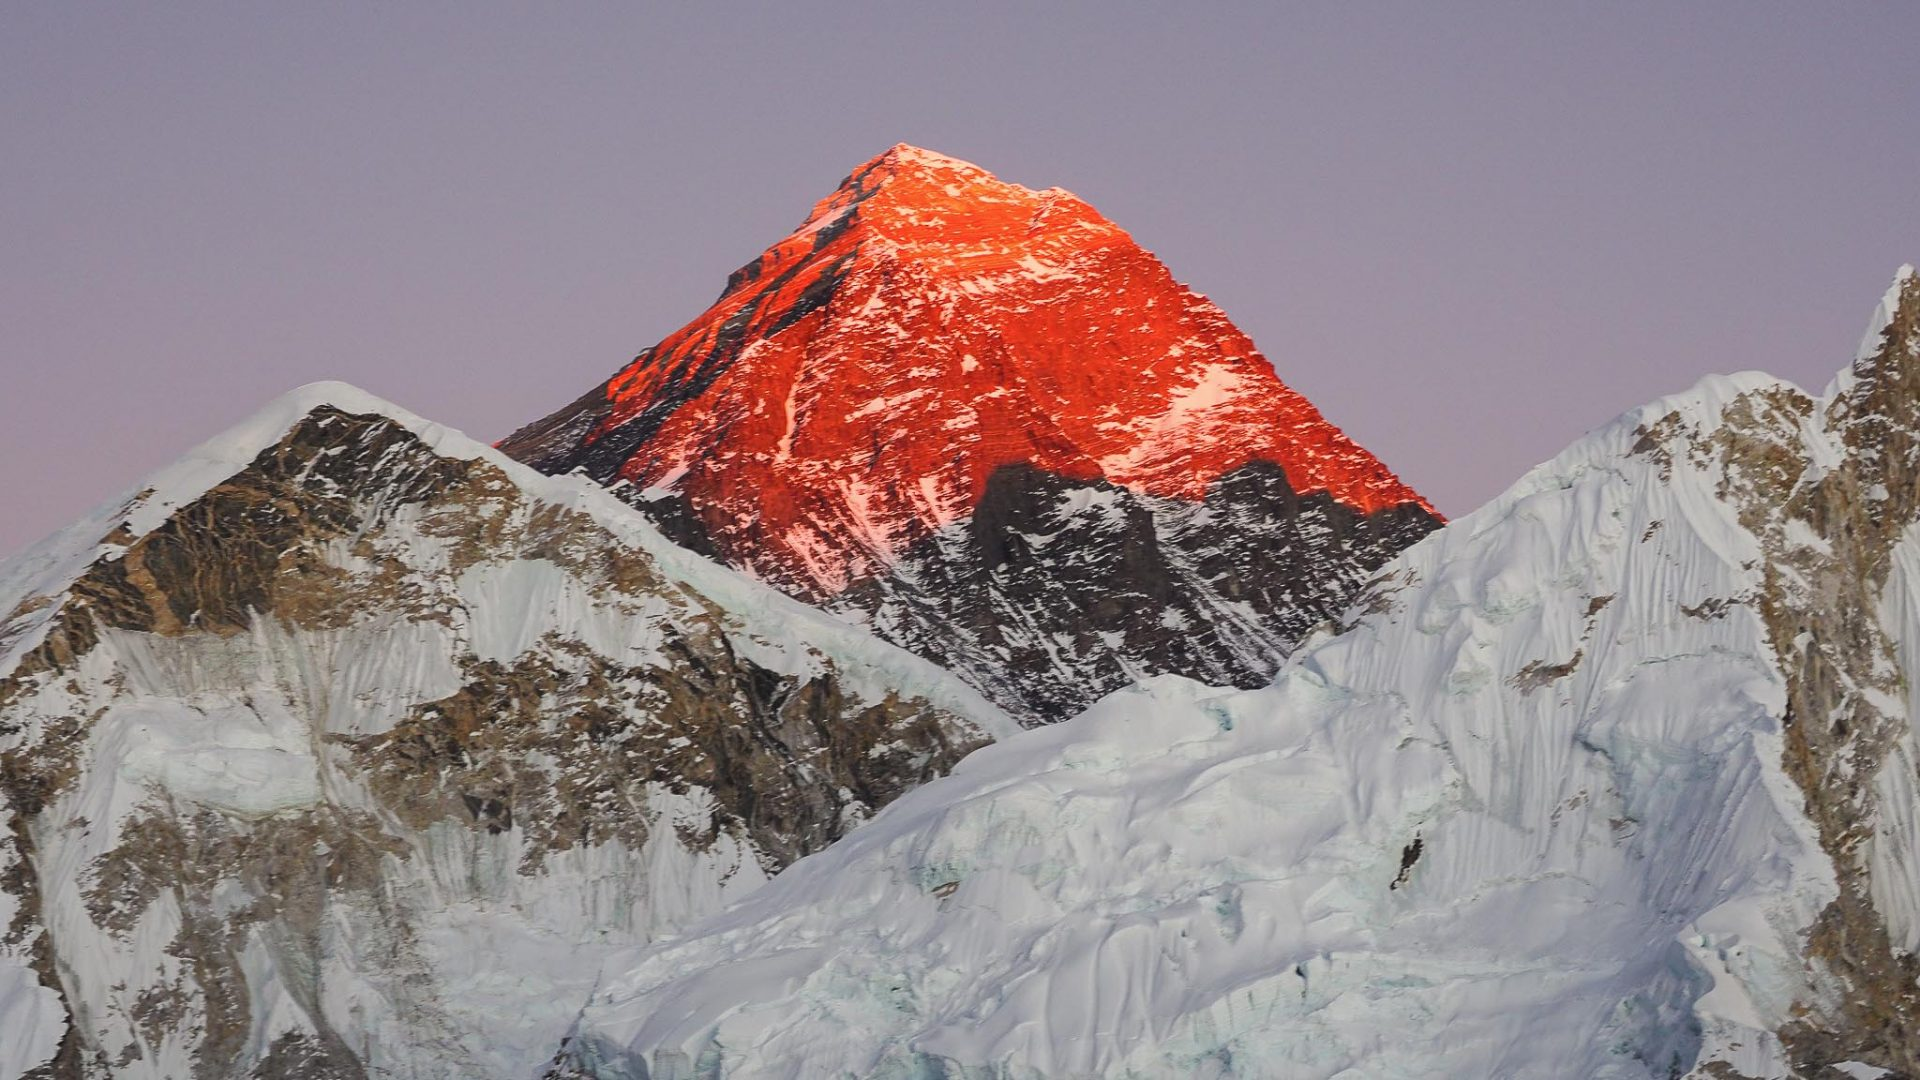 It's worth the hike up Kala Patthar at sunset for the amazing view of Mount Everest.